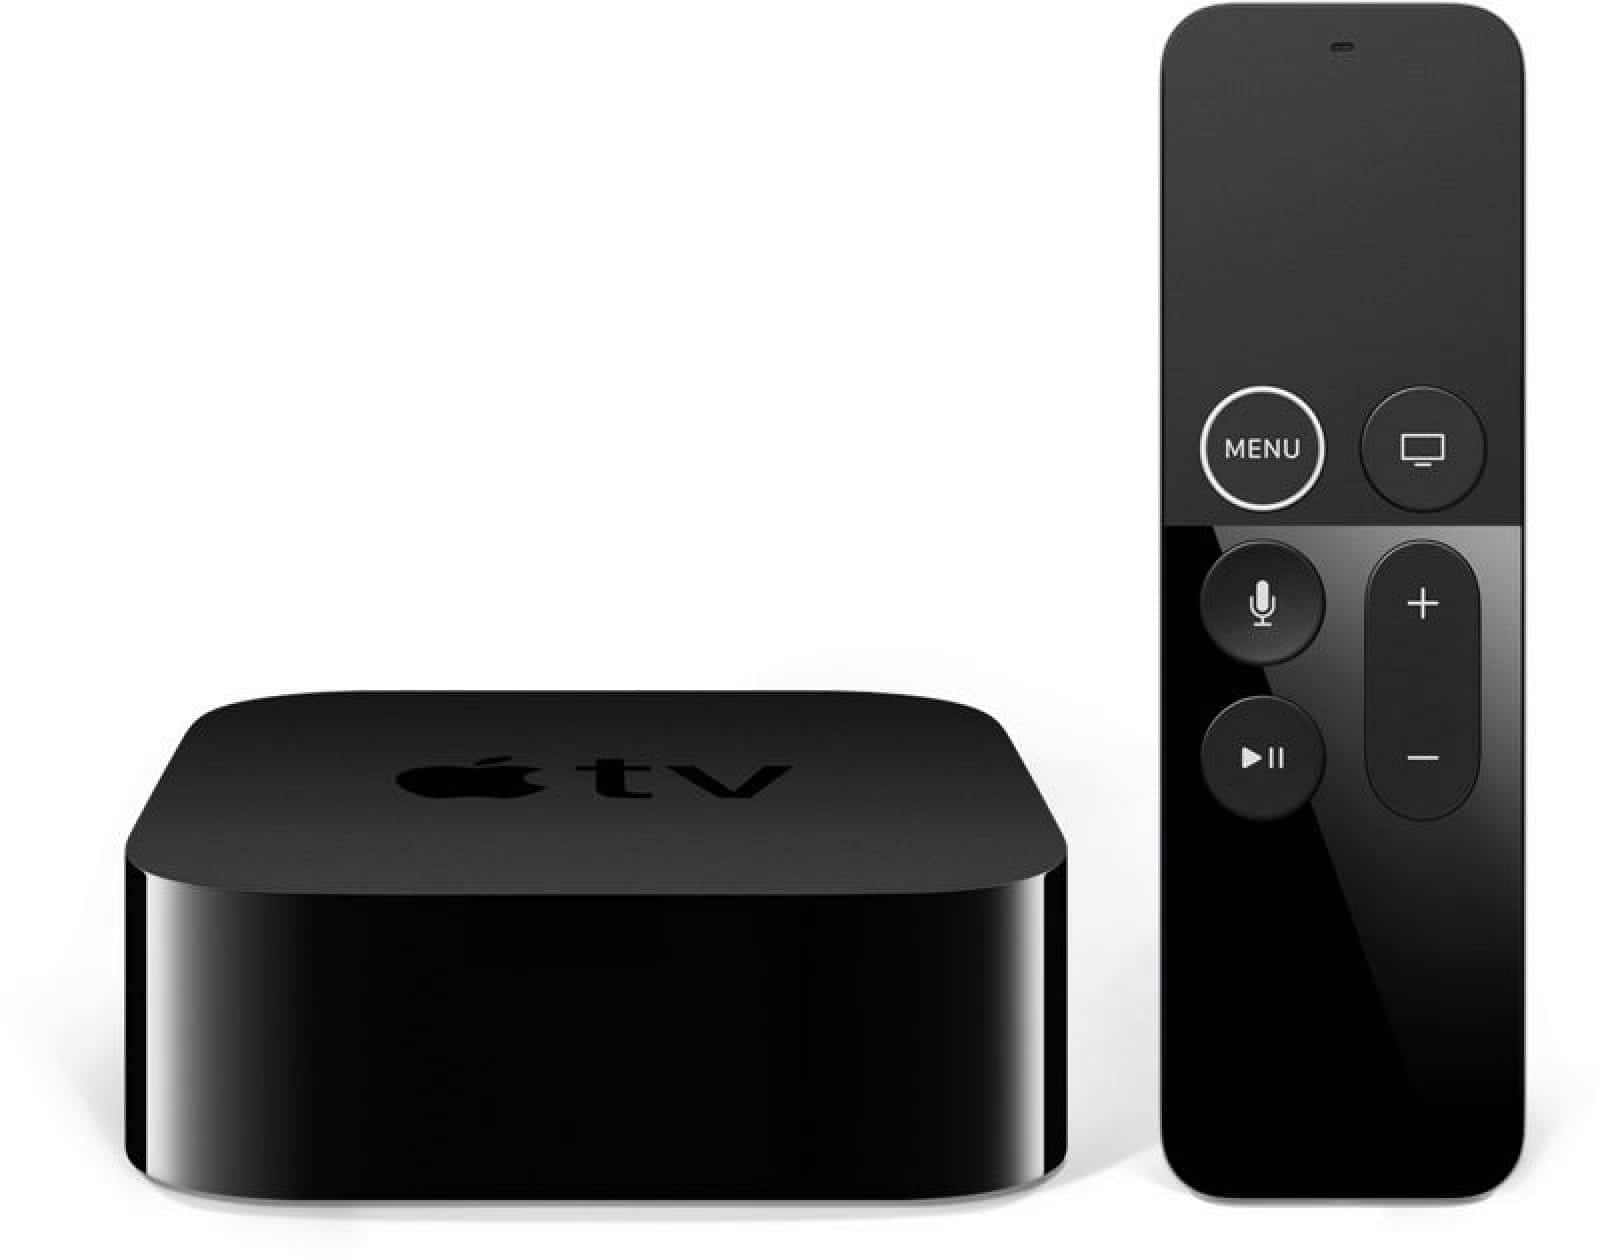 Apple TV 4K sale. Get yourself a good deal on the latest Apple TV 4K.